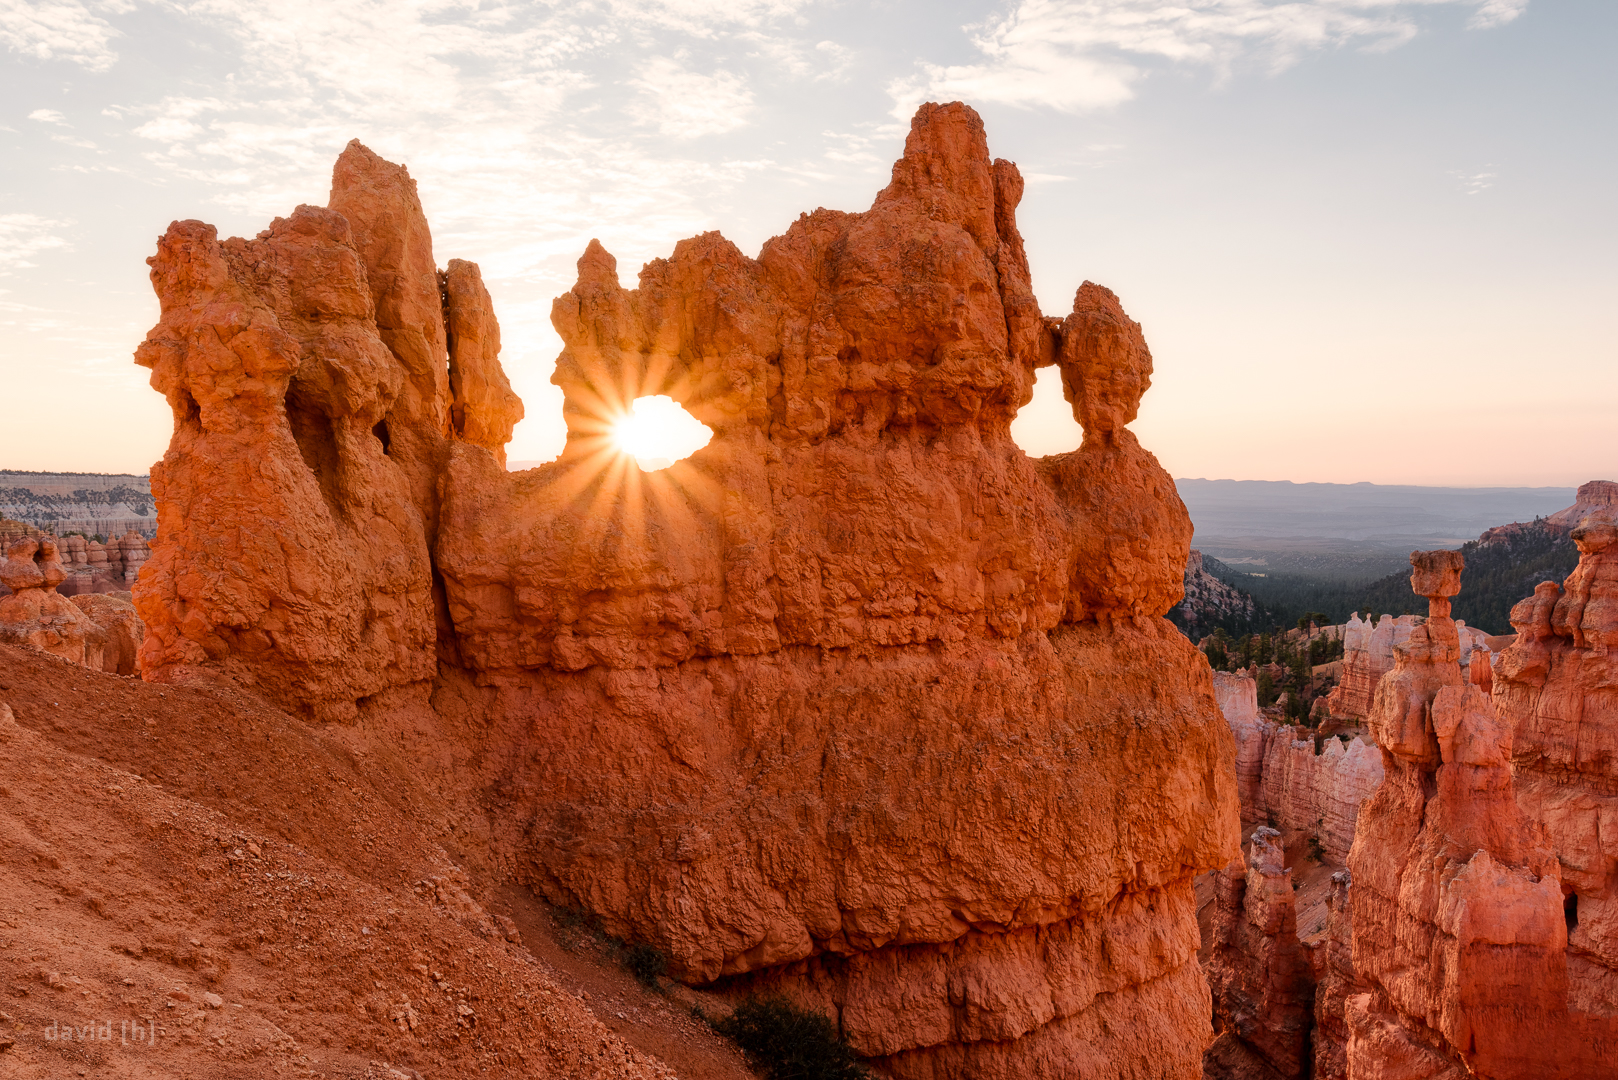 The sun peaks through one of the many windows found in the rock formations in Bryce Canyon. All you have to do is get off the beaten path and you'd be surprised what you'll find!